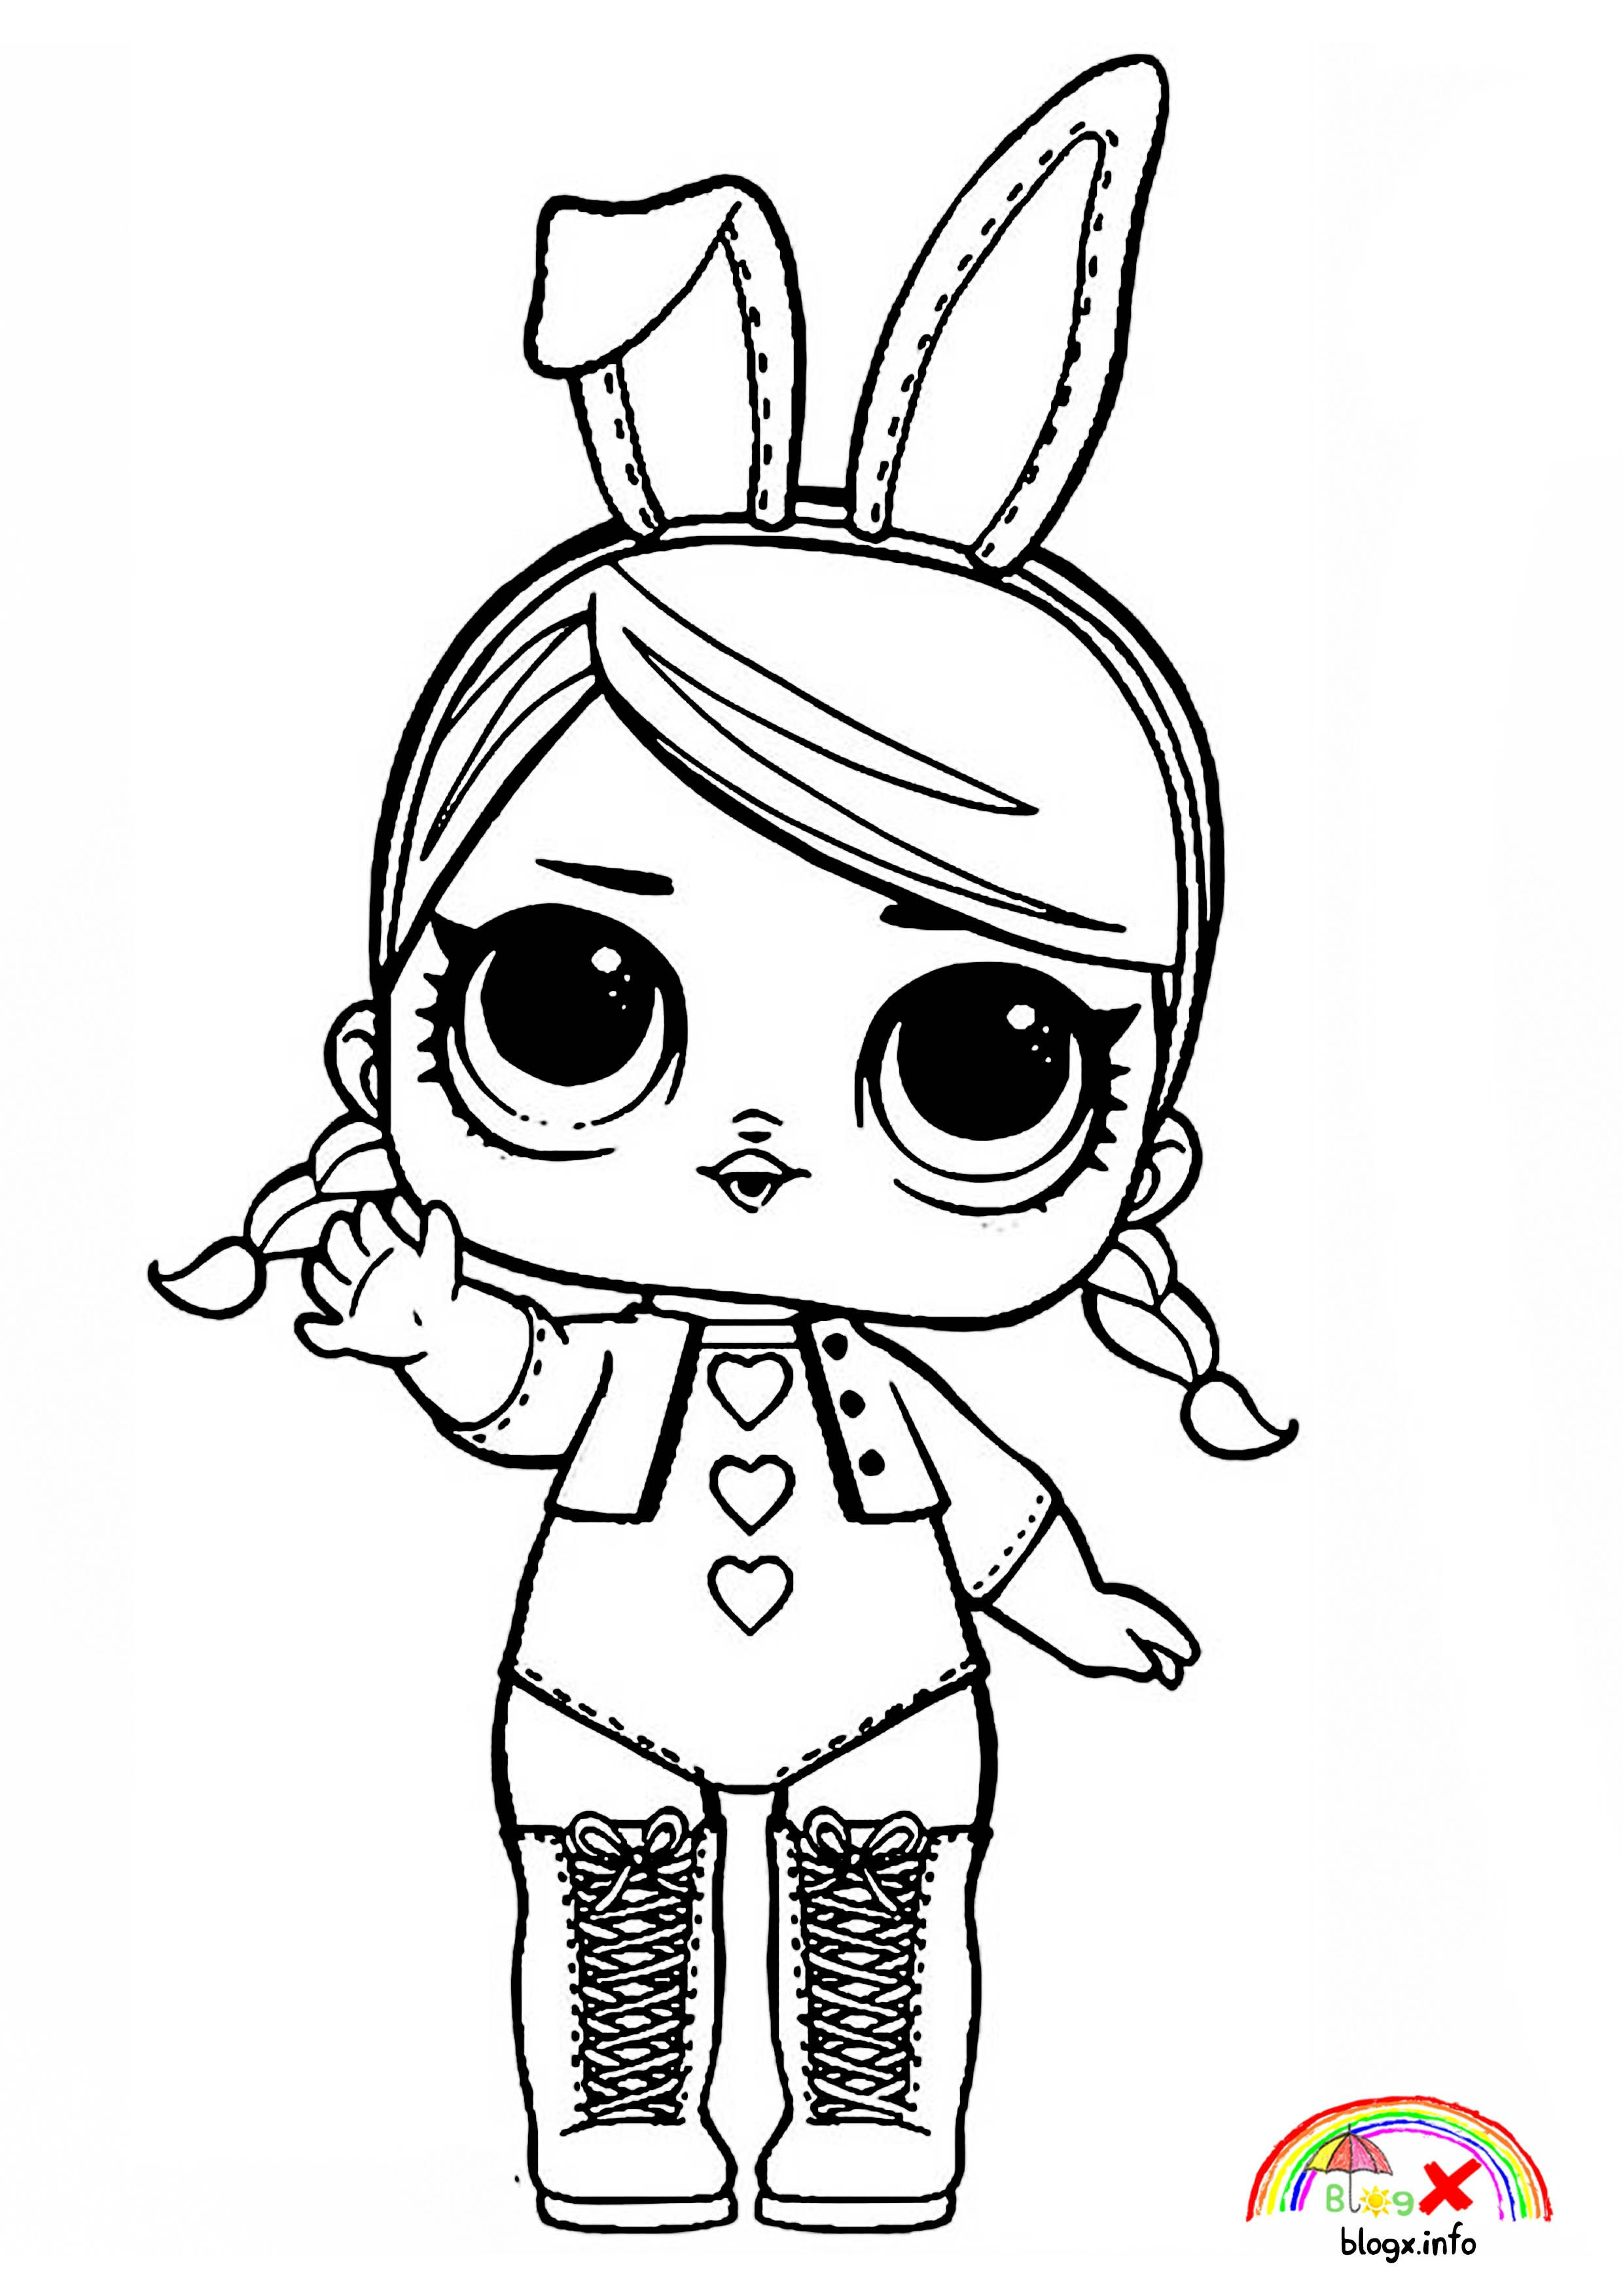 Bunny Costume Lol Surprise Dolls Coloring Page Mandala Coloring Pages Coloring Pages For Kids Tattoo Coloring Book